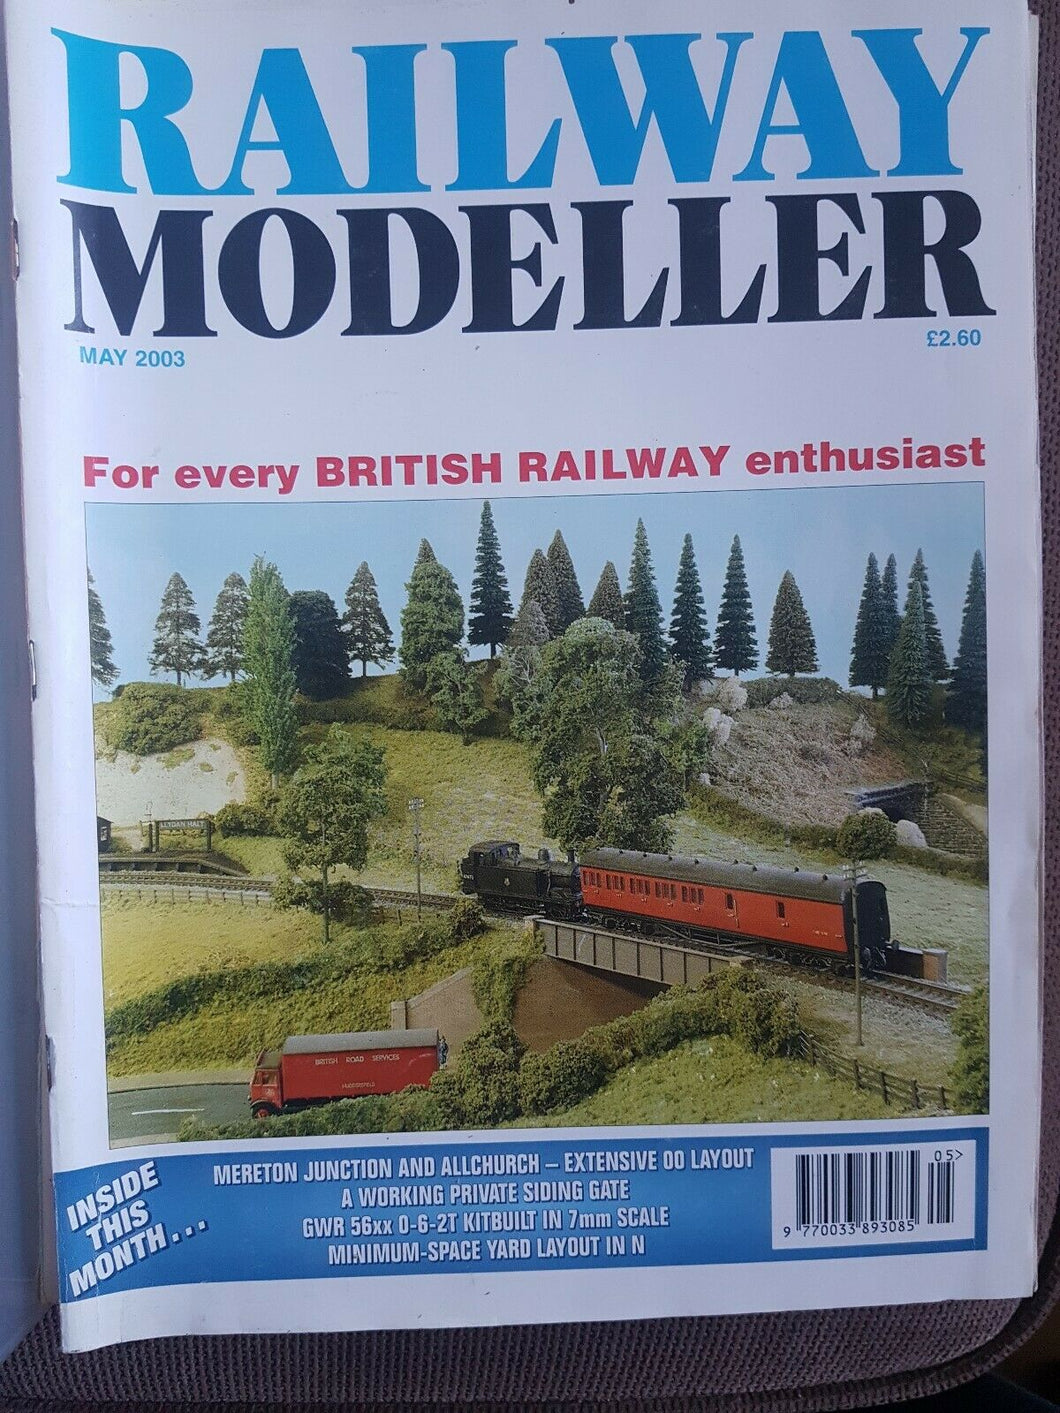 Railway modeller magazine May 2003